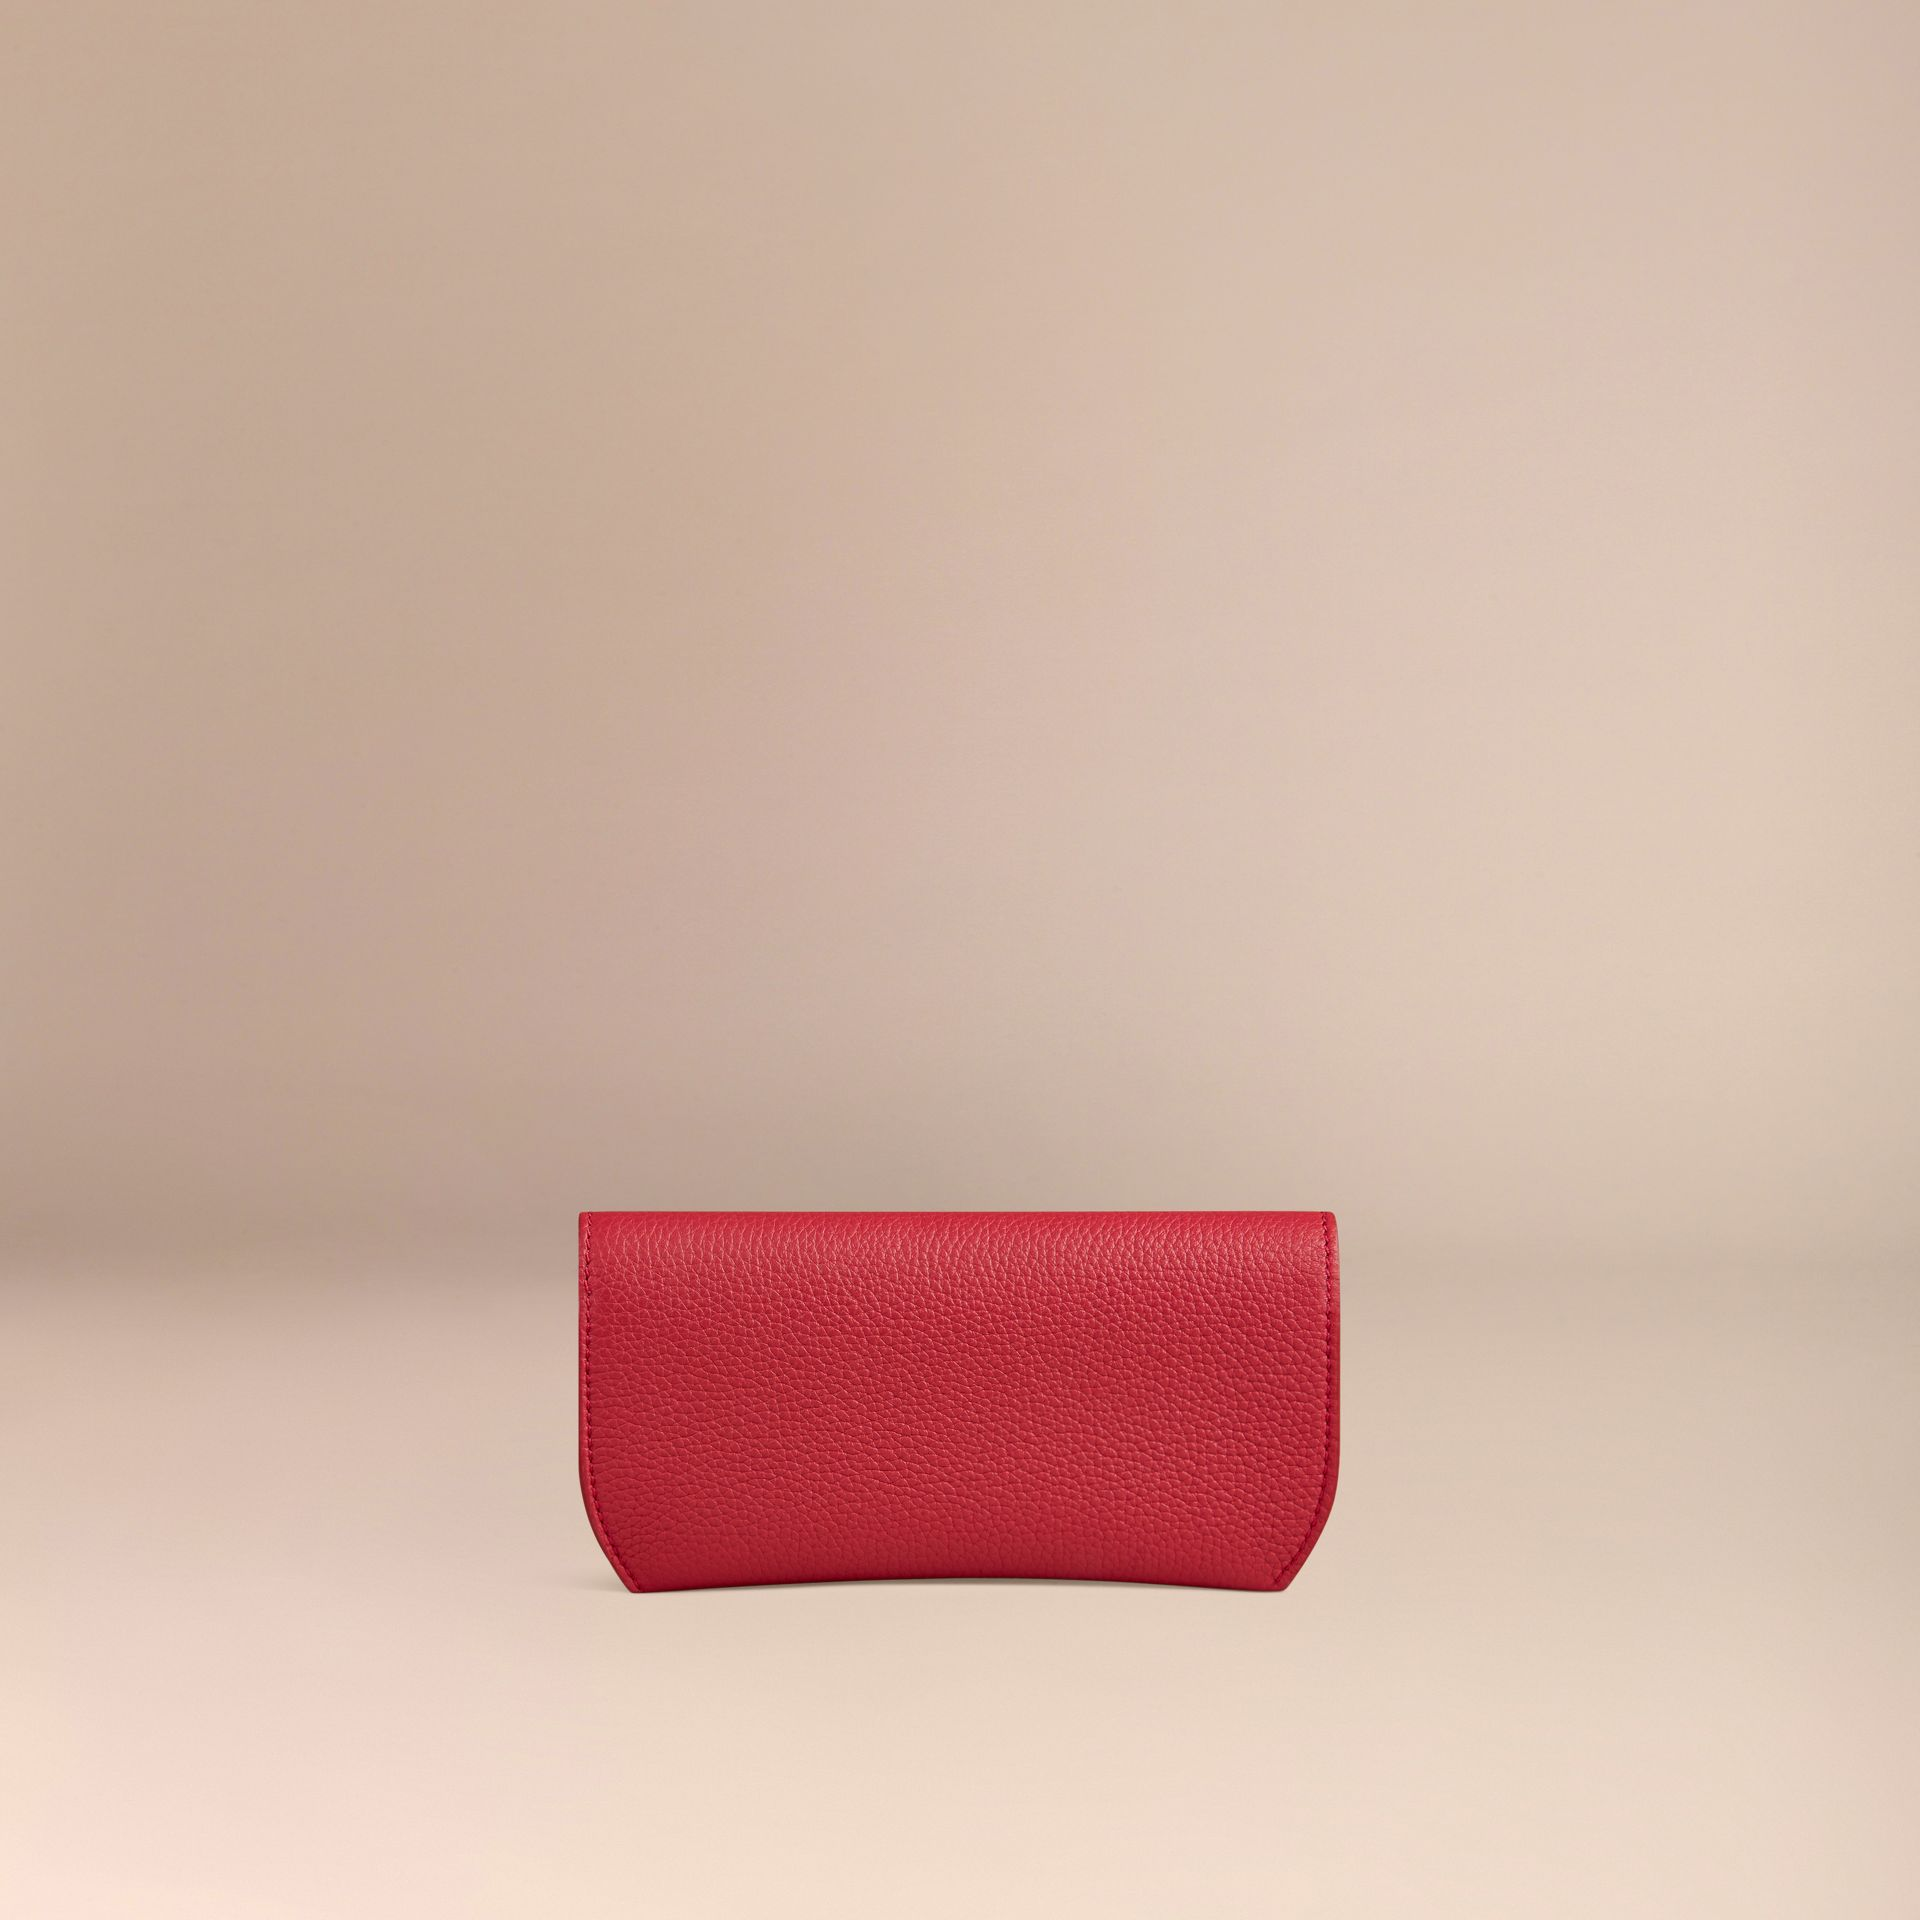 Parade red Grainy Leather Eyewear Case Parade Red - gallery image 3